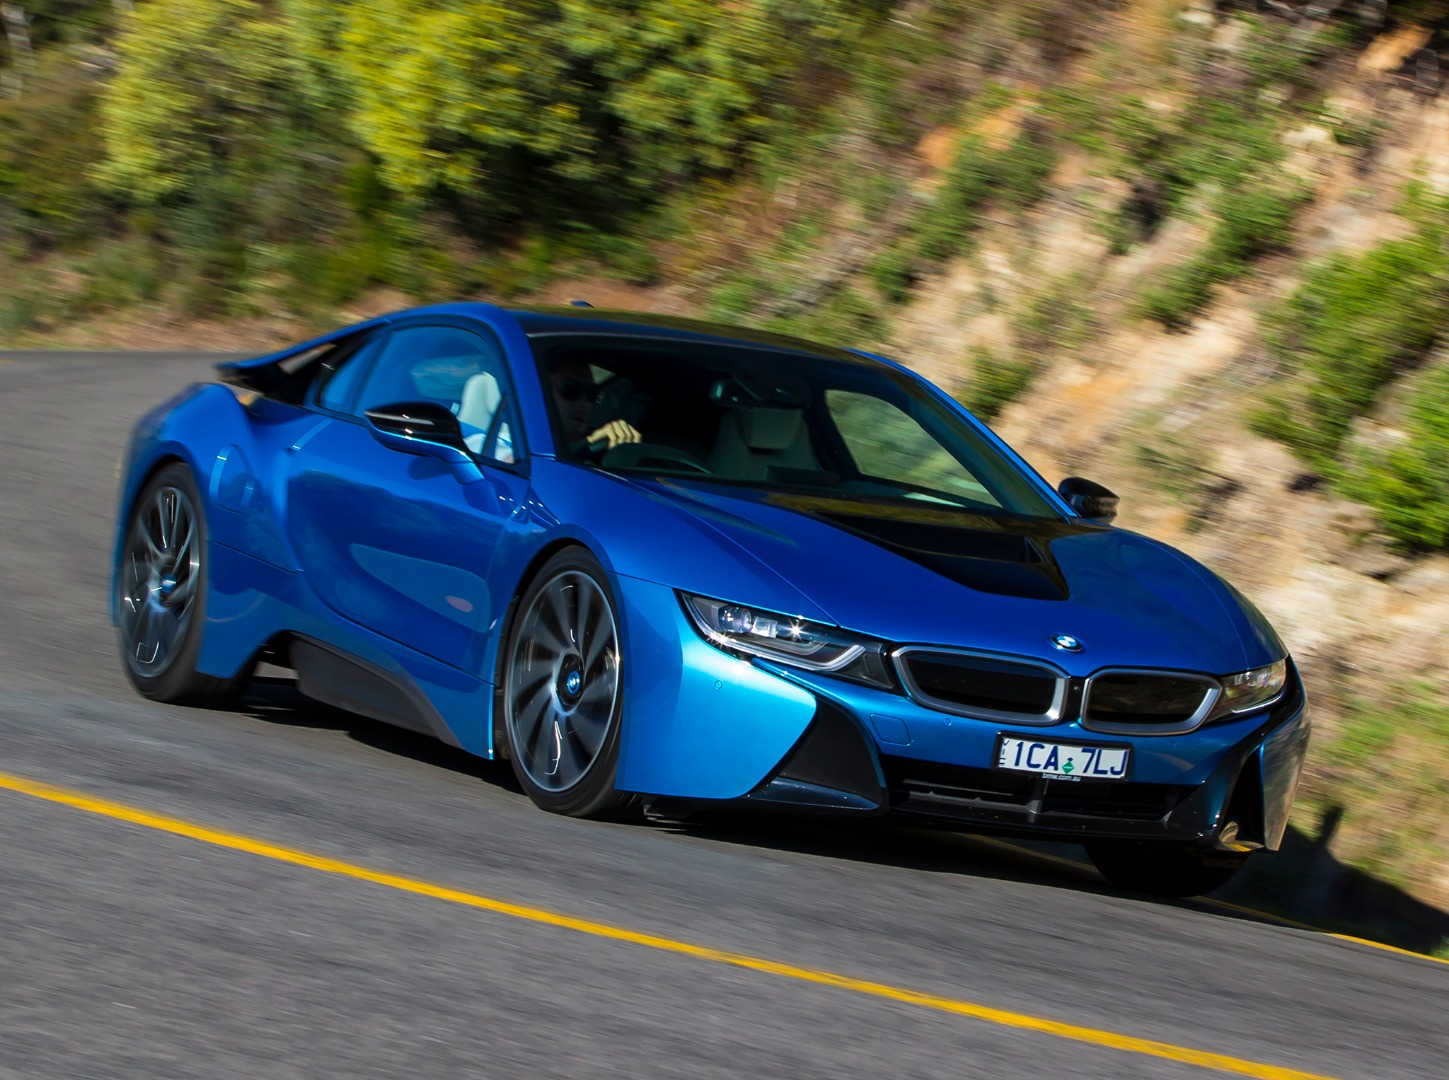 news bmw s i8 sports car to get more power range with facelift. Black Bedroom Furniture Sets. Home Design Ideas